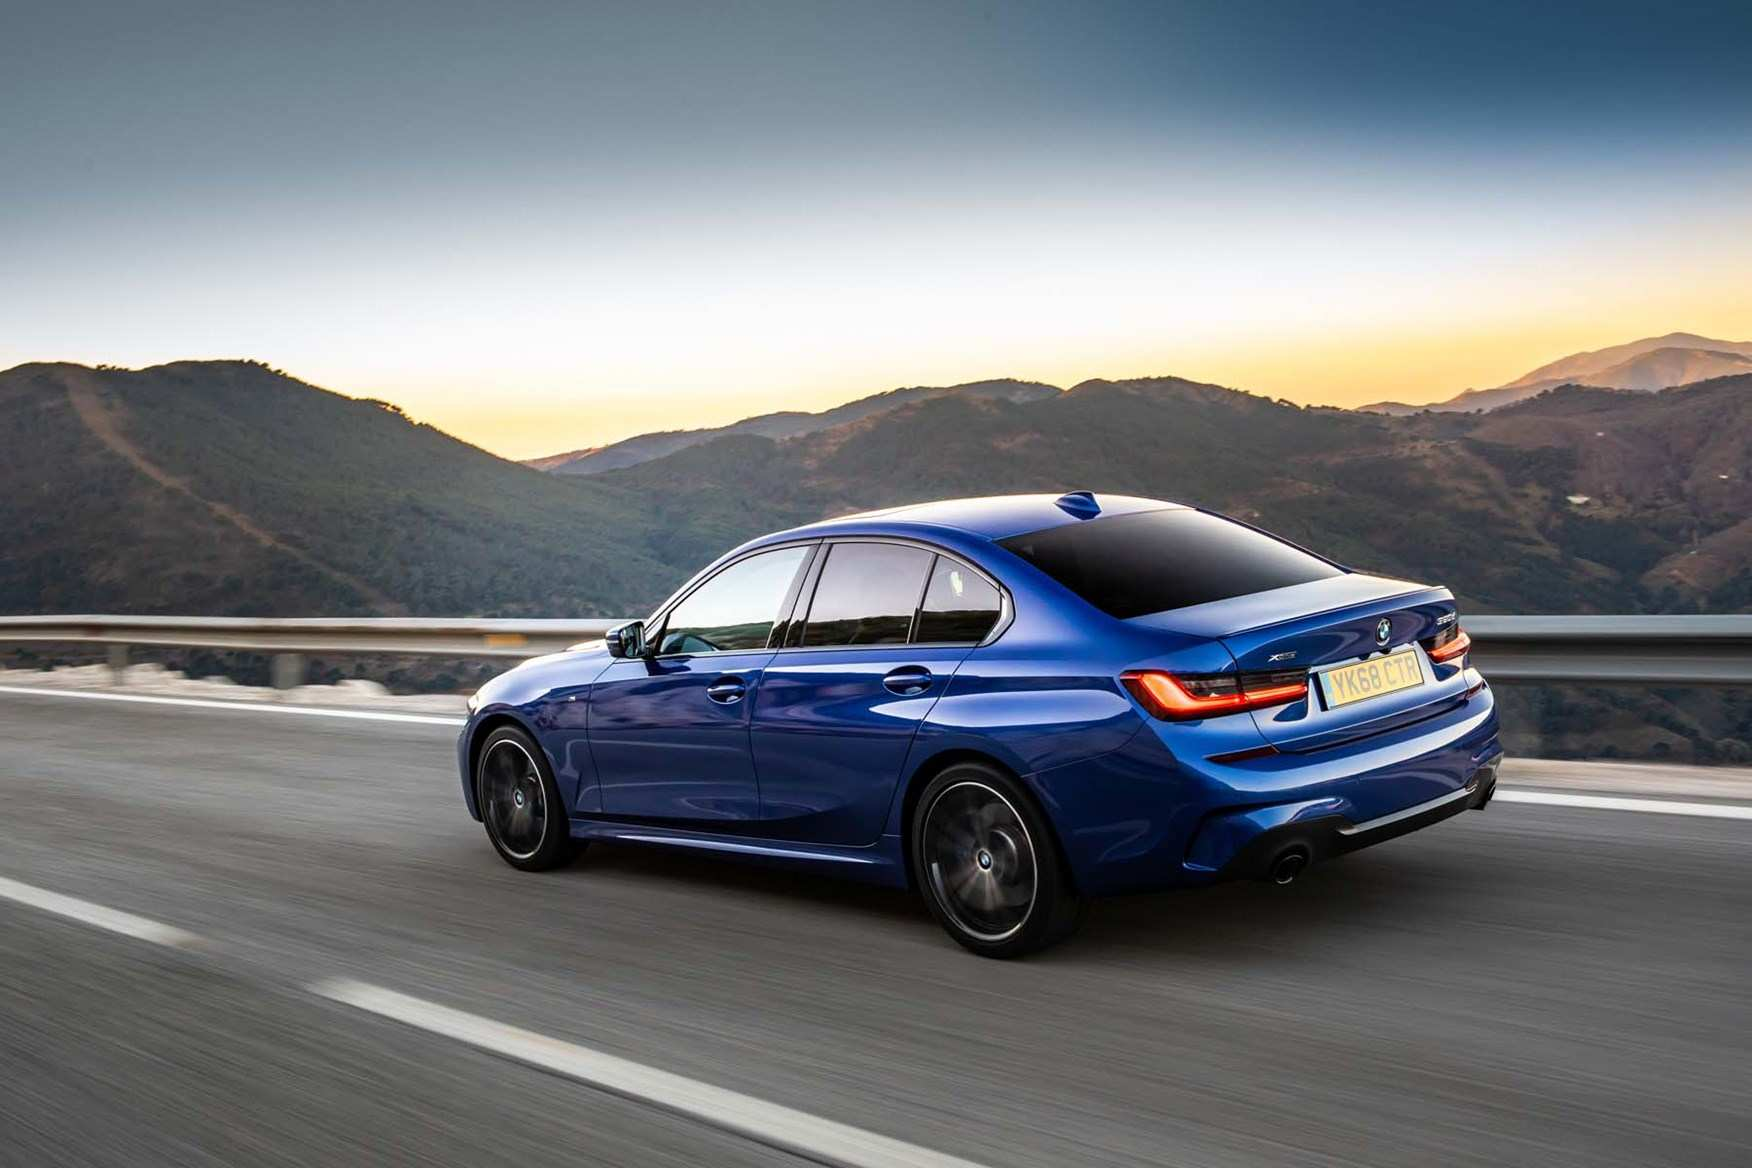 16 A 2019 BMW 3 Series Edrive Phev Price And Release Date